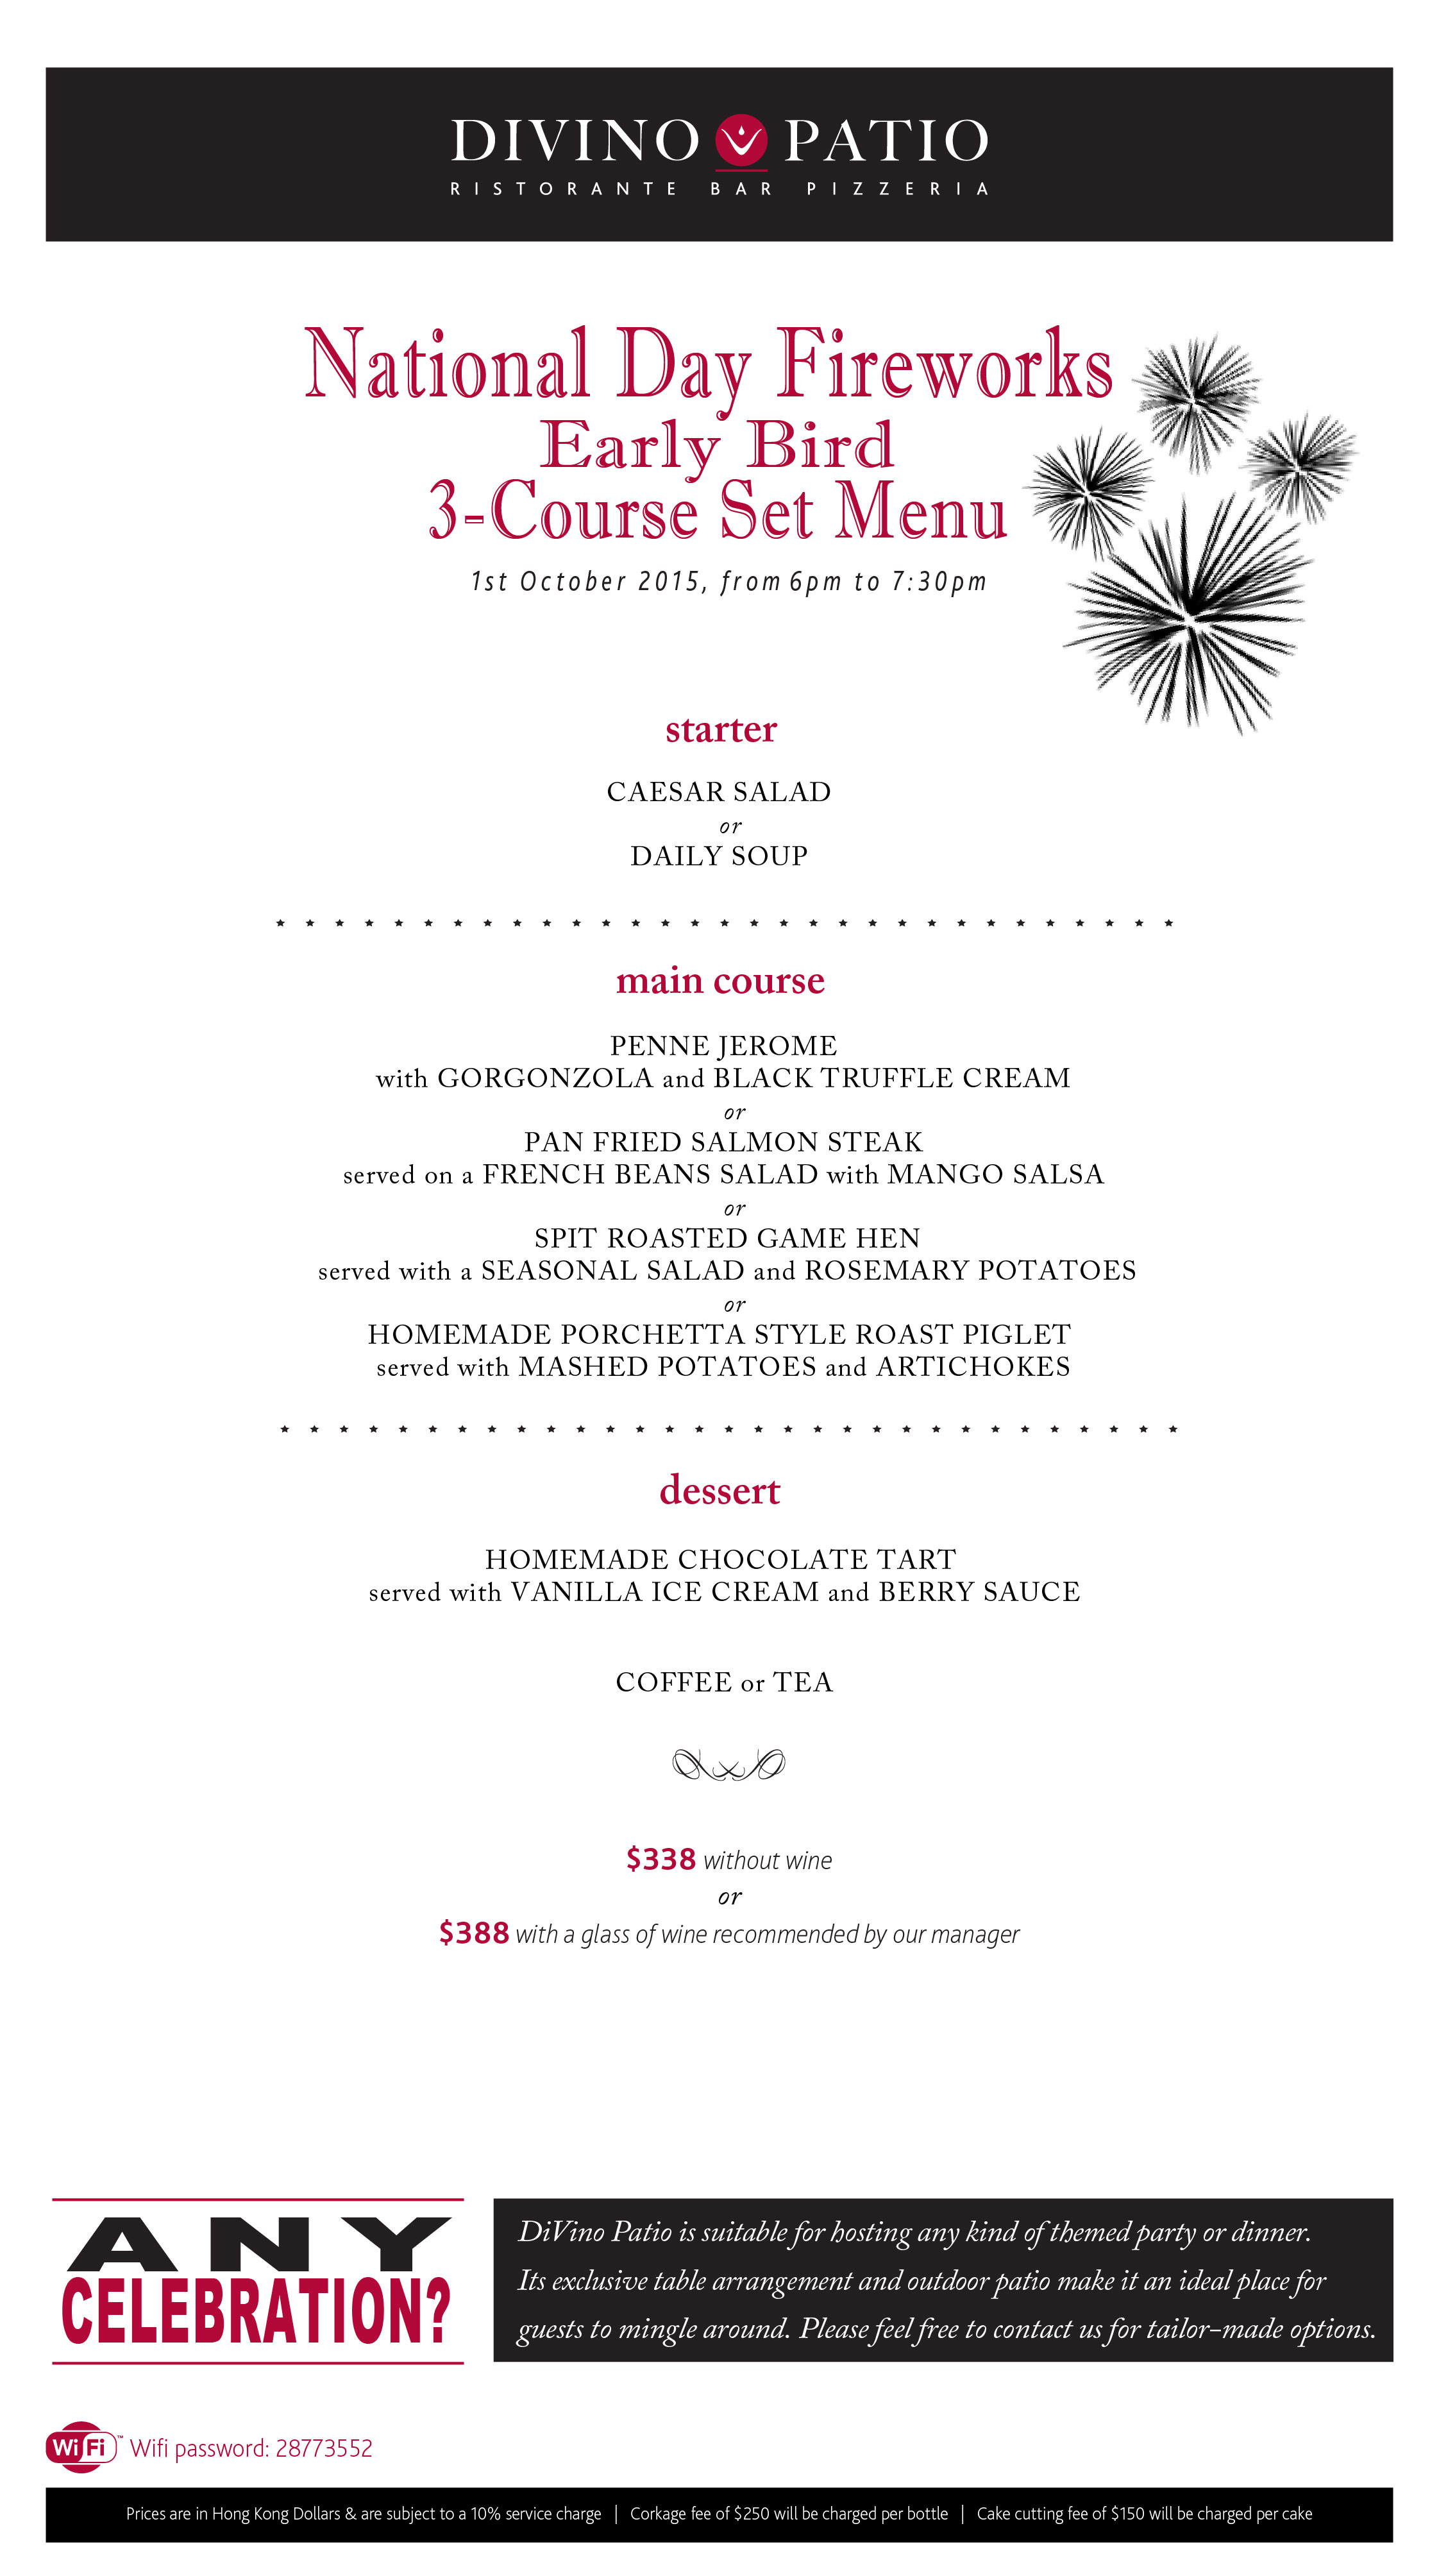 DiVino Group2015 Patio national day menu 01 DiVino Group